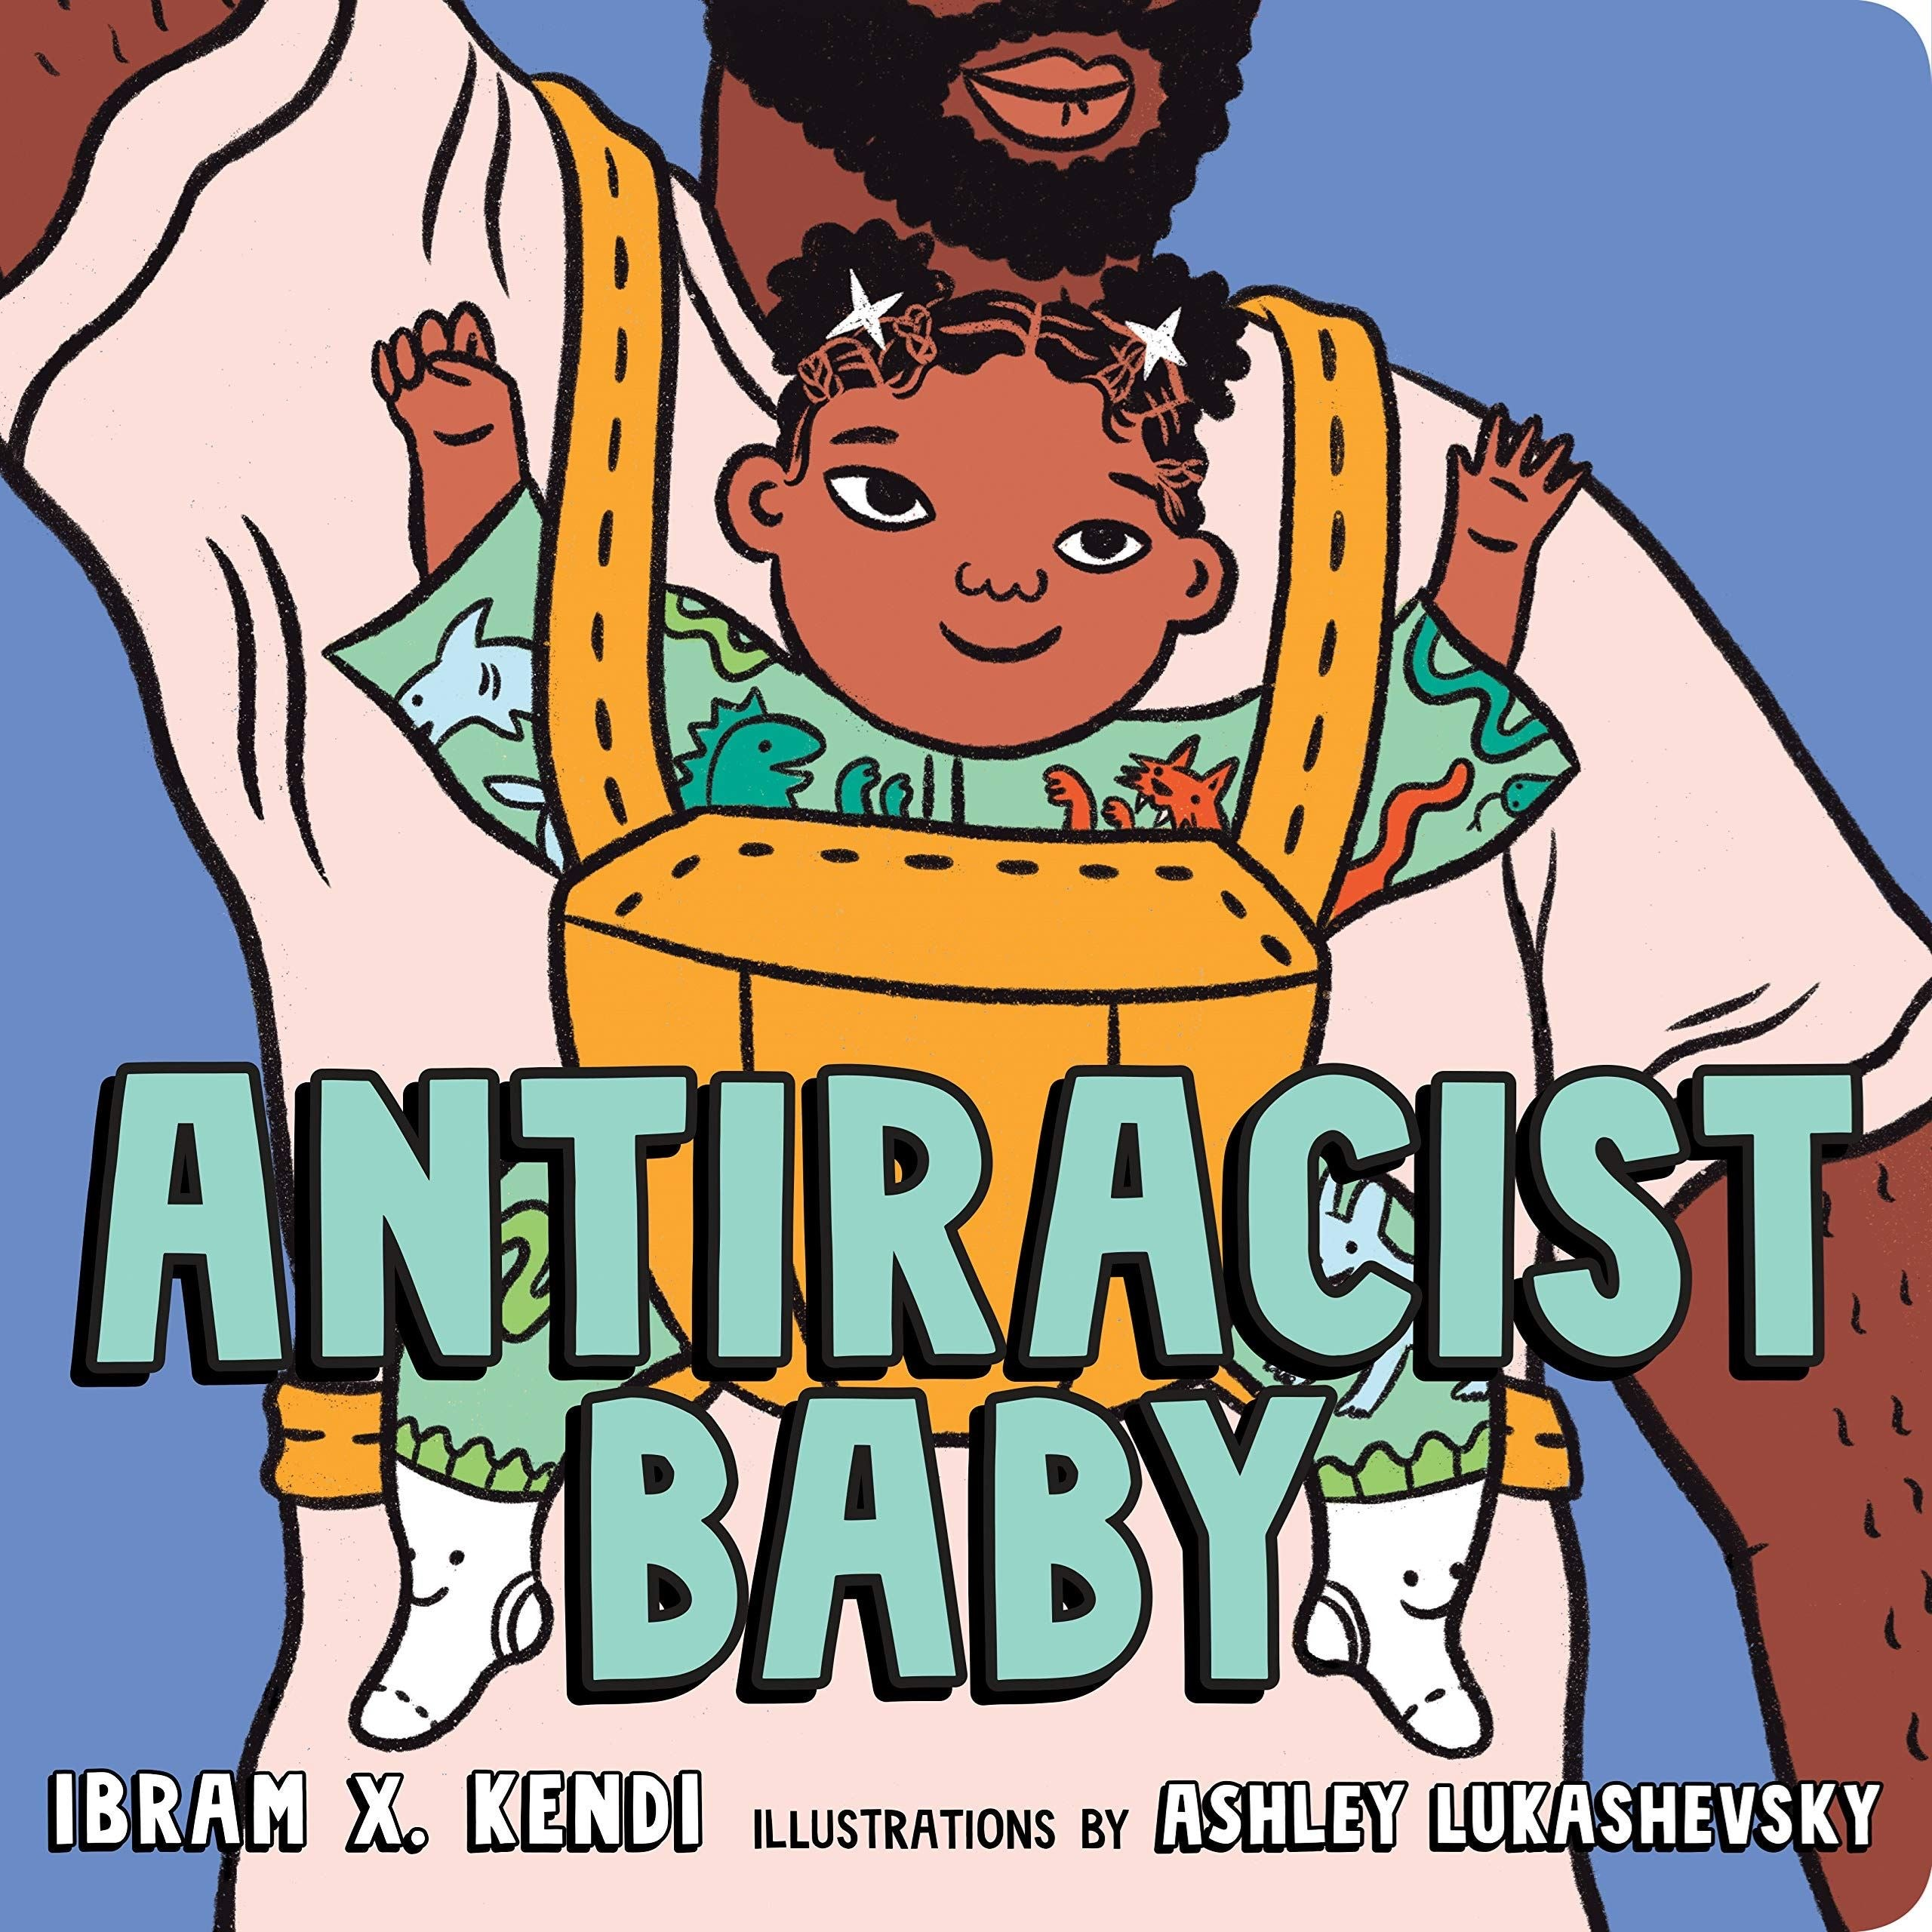 Antiracist baby (board)